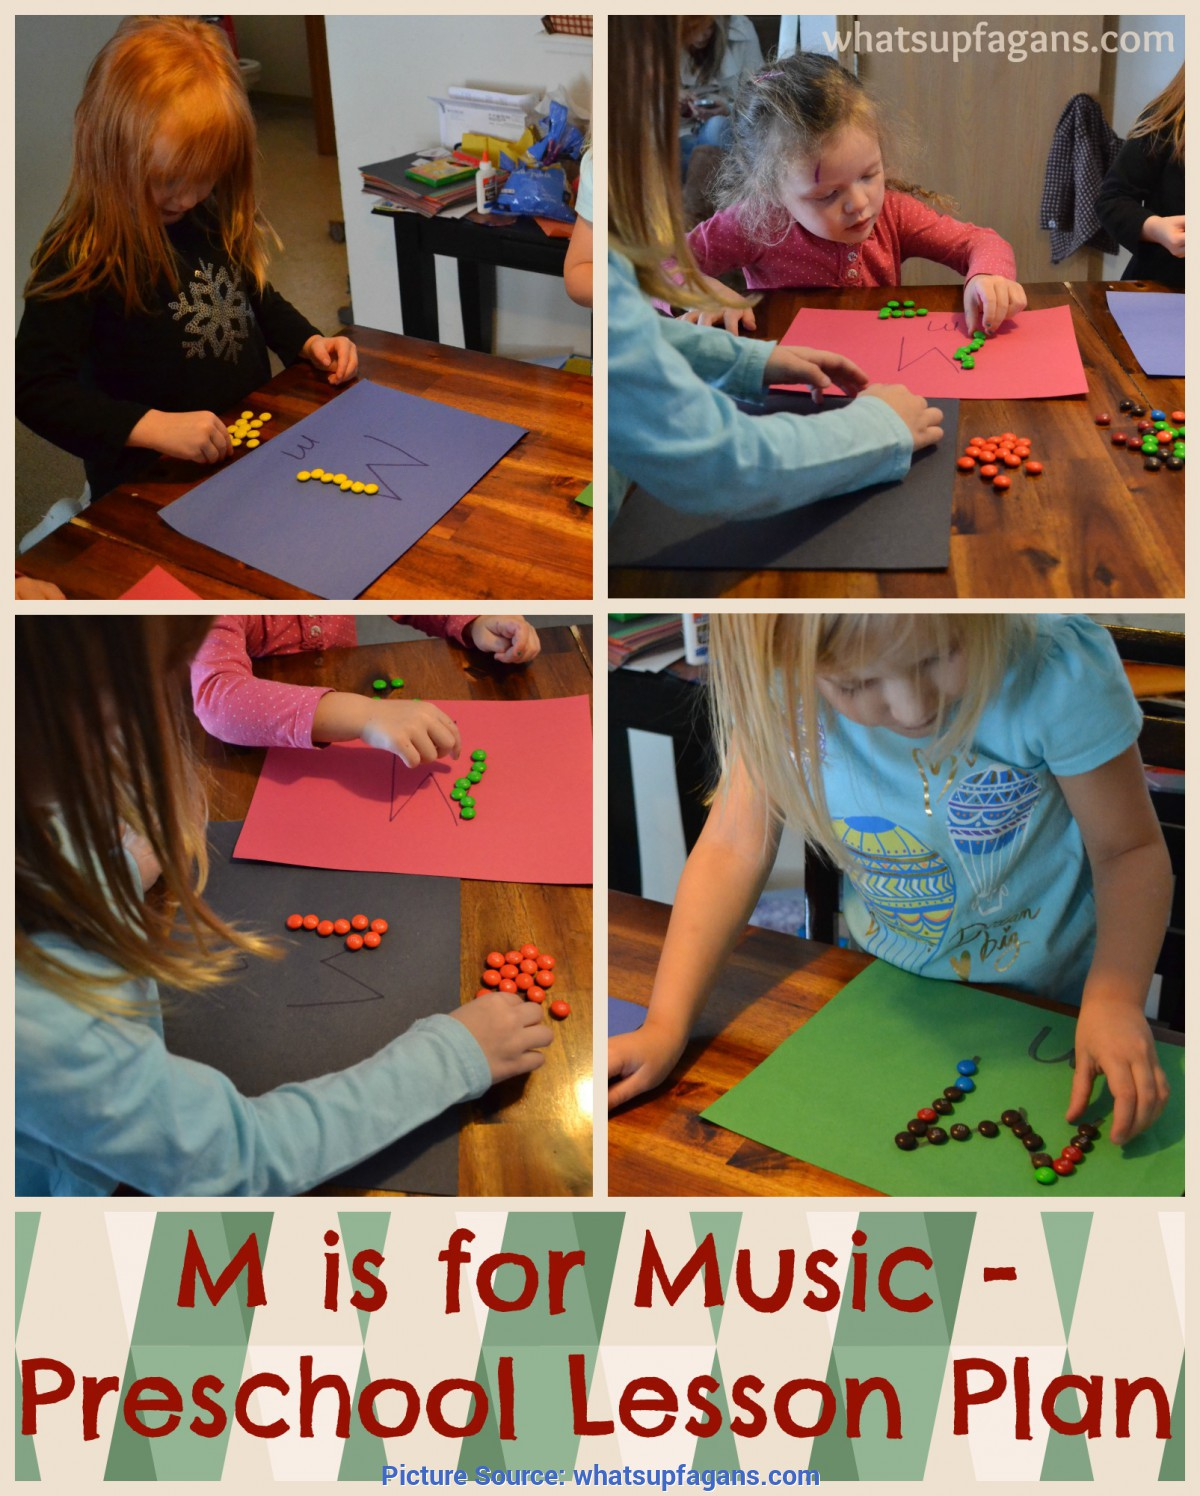 Typical Lesson Plans For Toddlers Music Letter M Activities For Preschool: M Is For Music Le